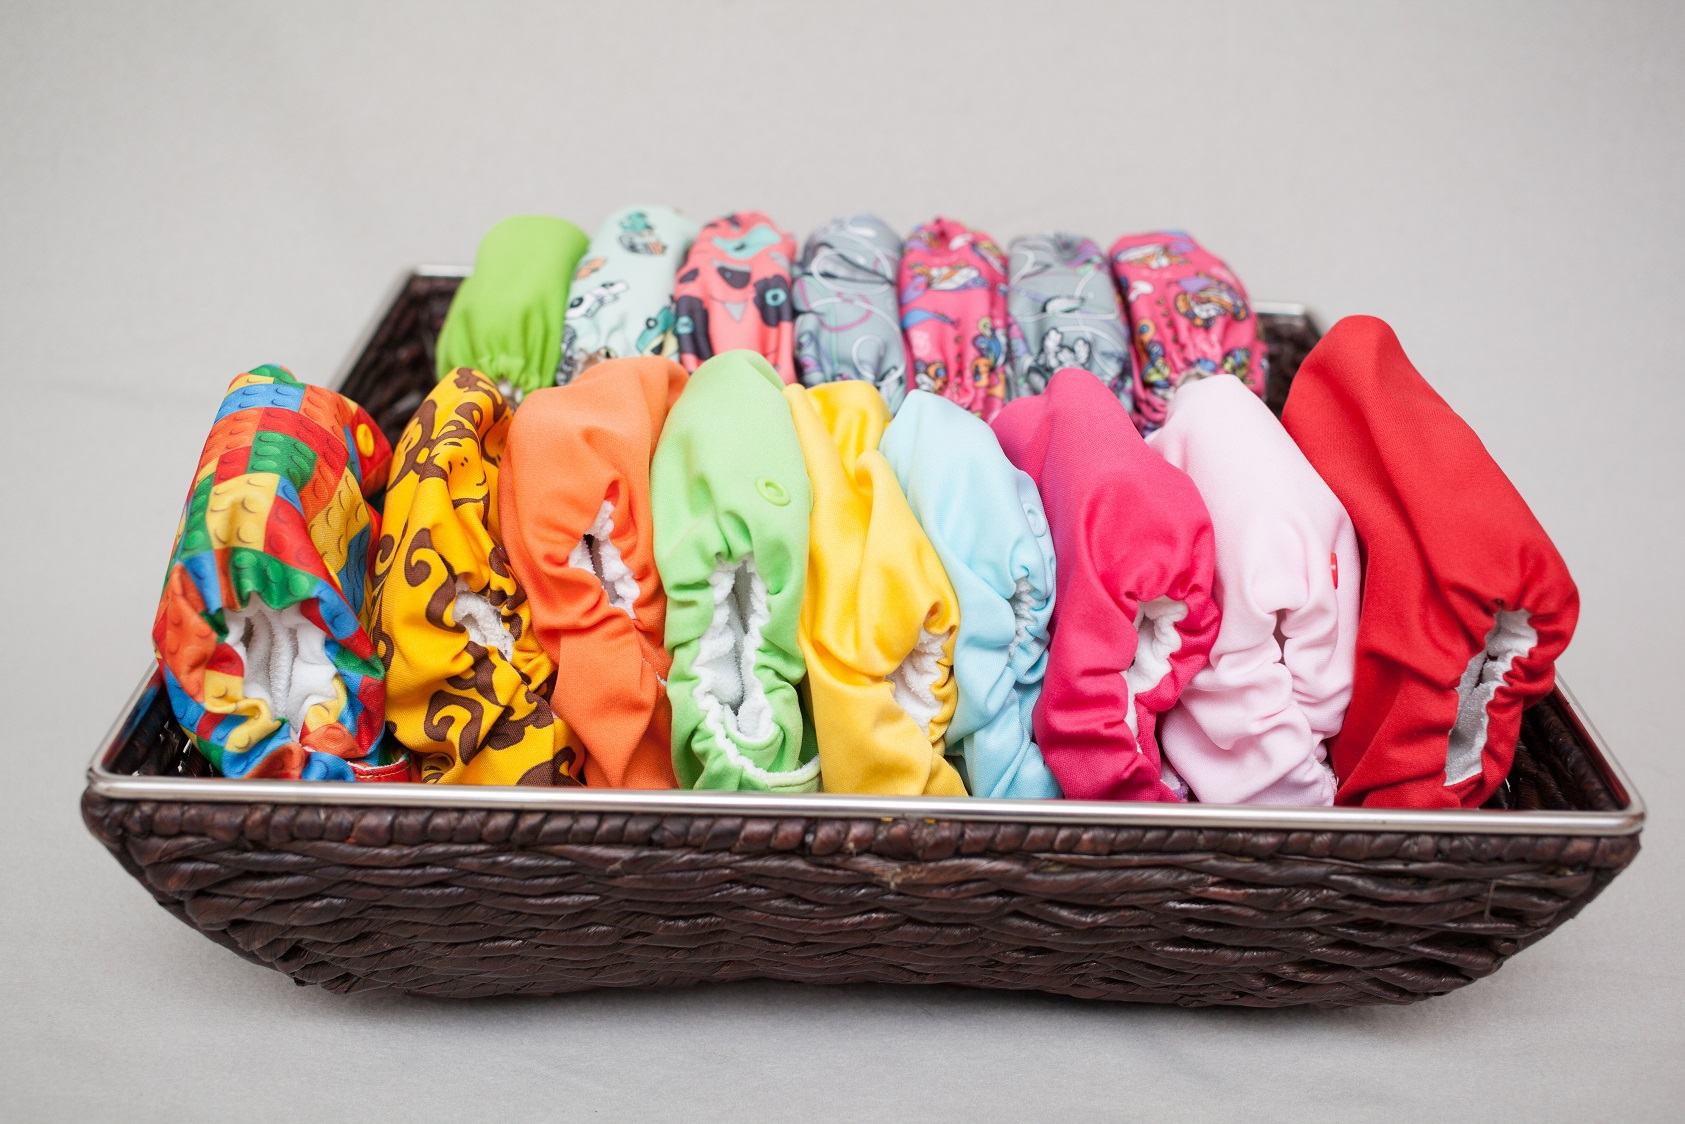 How Long Will Cloth Diapers Last?